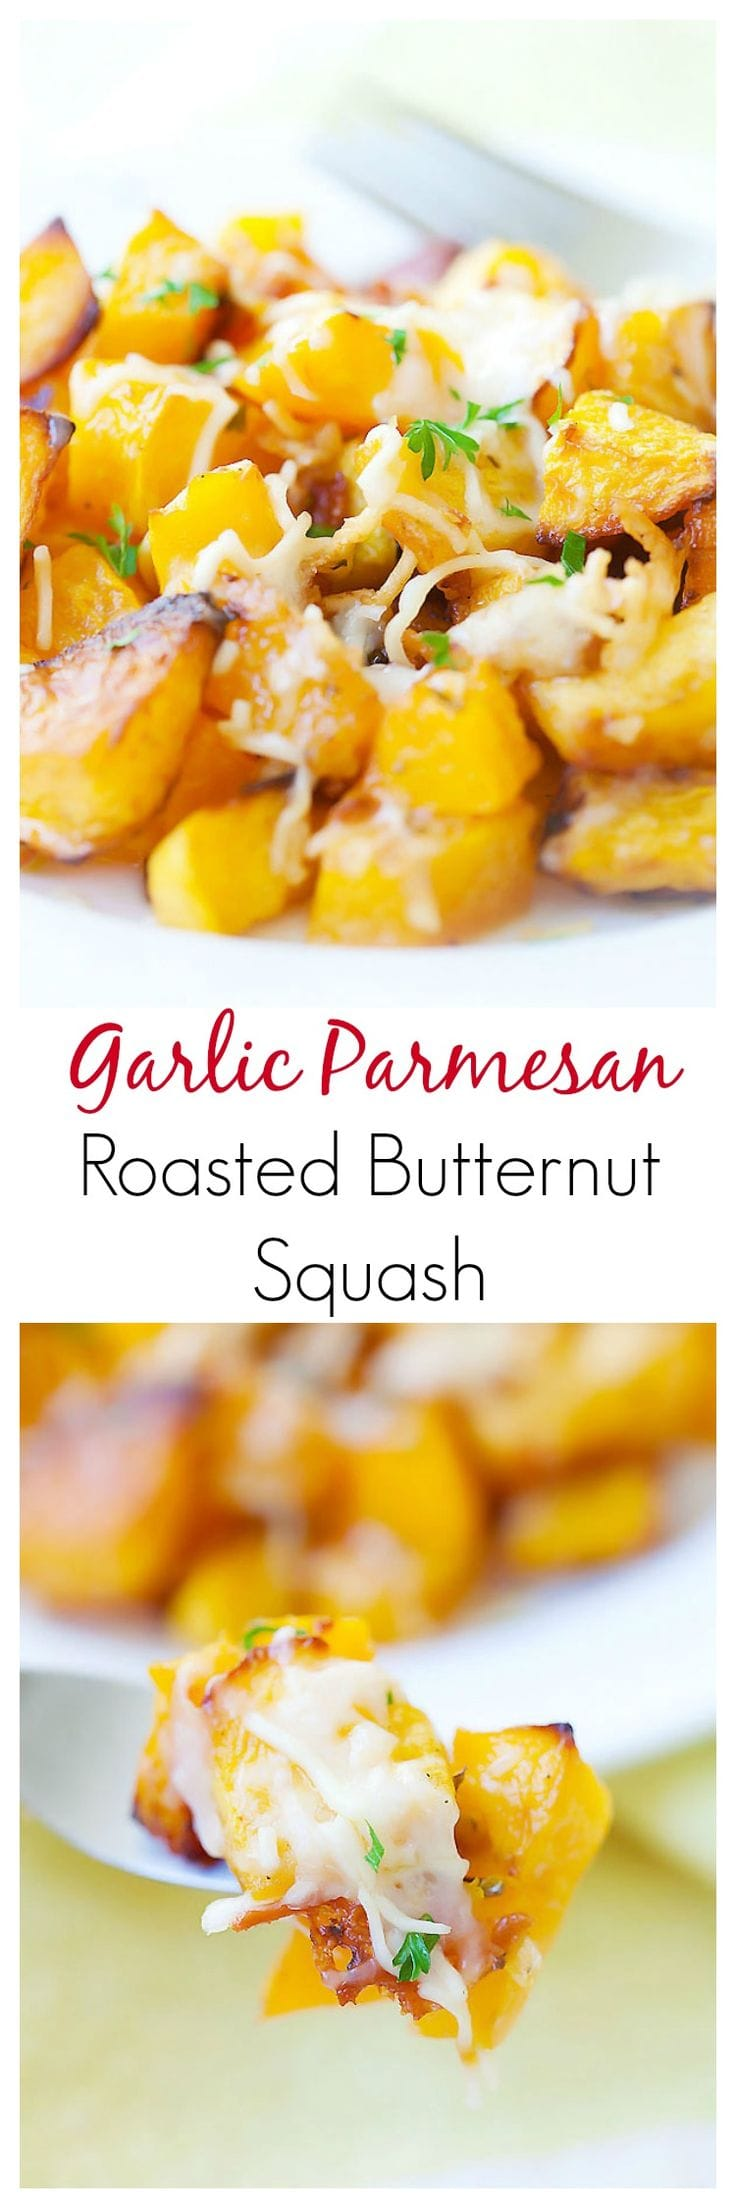 Garlic Parmesan Roasted Butternut squash – sweet tender butternut squash roasted with butter, garlic & Parmesan cheese. So AMAZING you want it every day | rasamalaysia.com